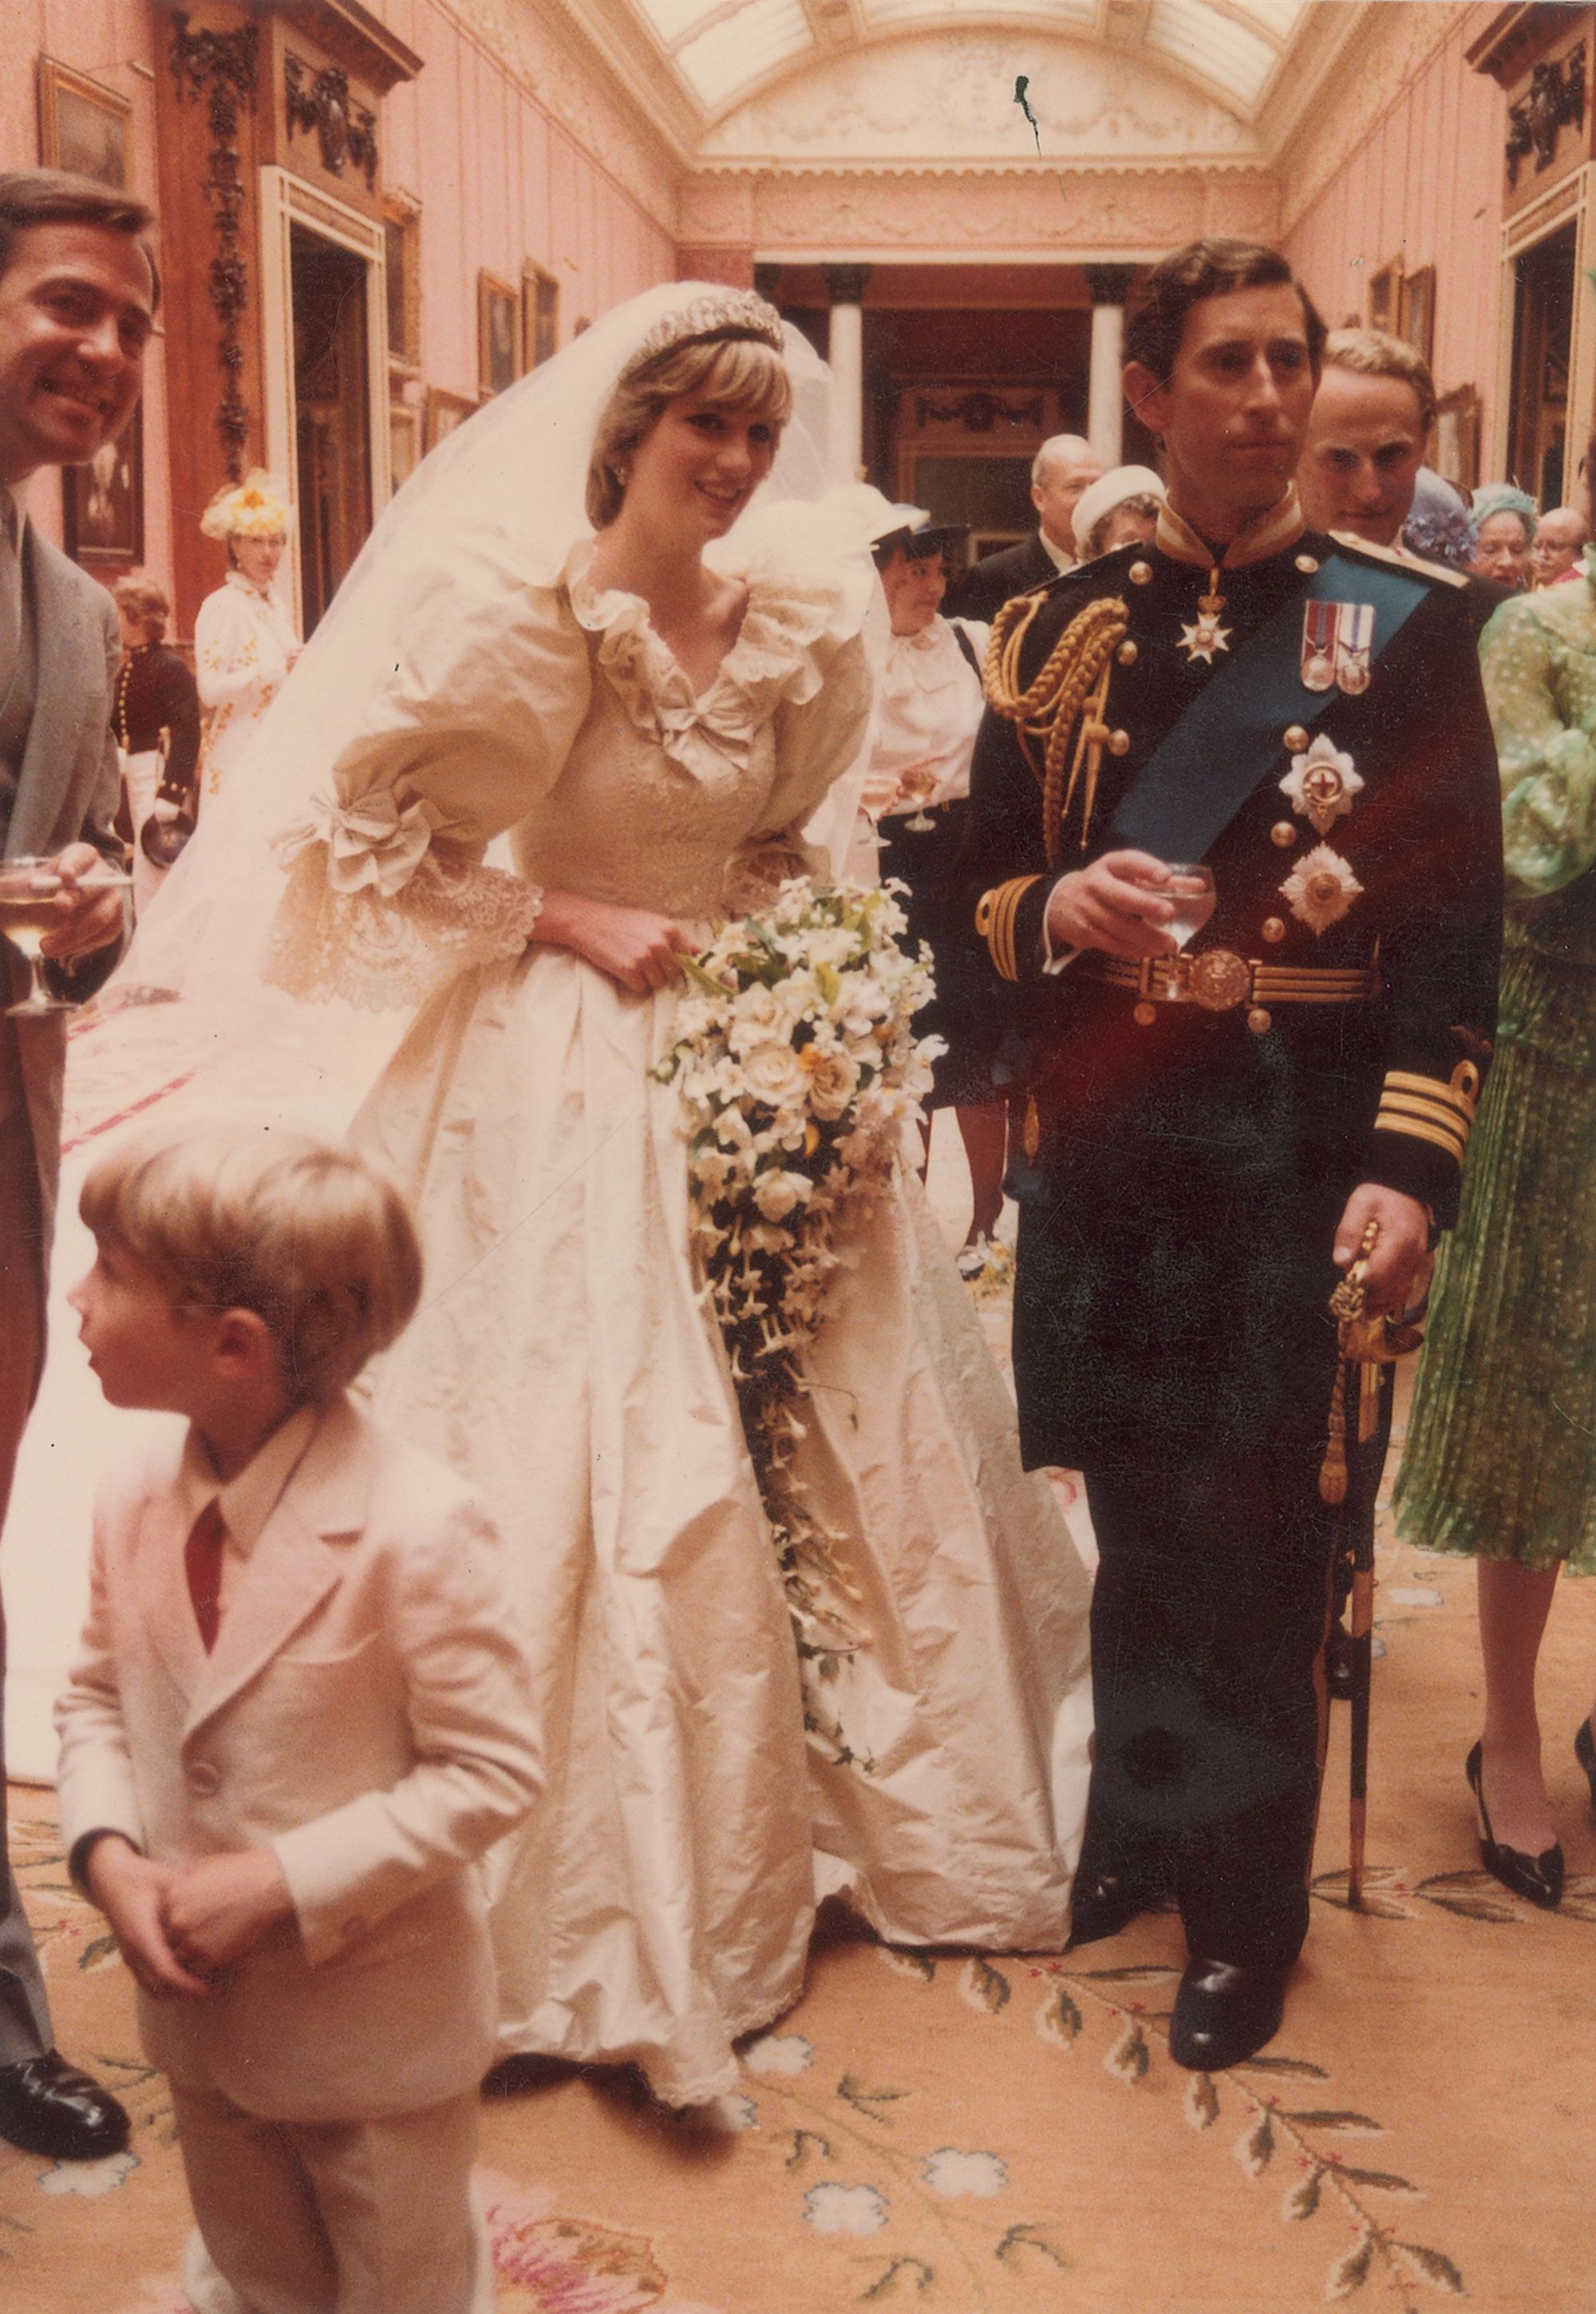 Charles And Diana Wedding.Princess Diana And Prince Charles Unseen Wedding Photos Rare